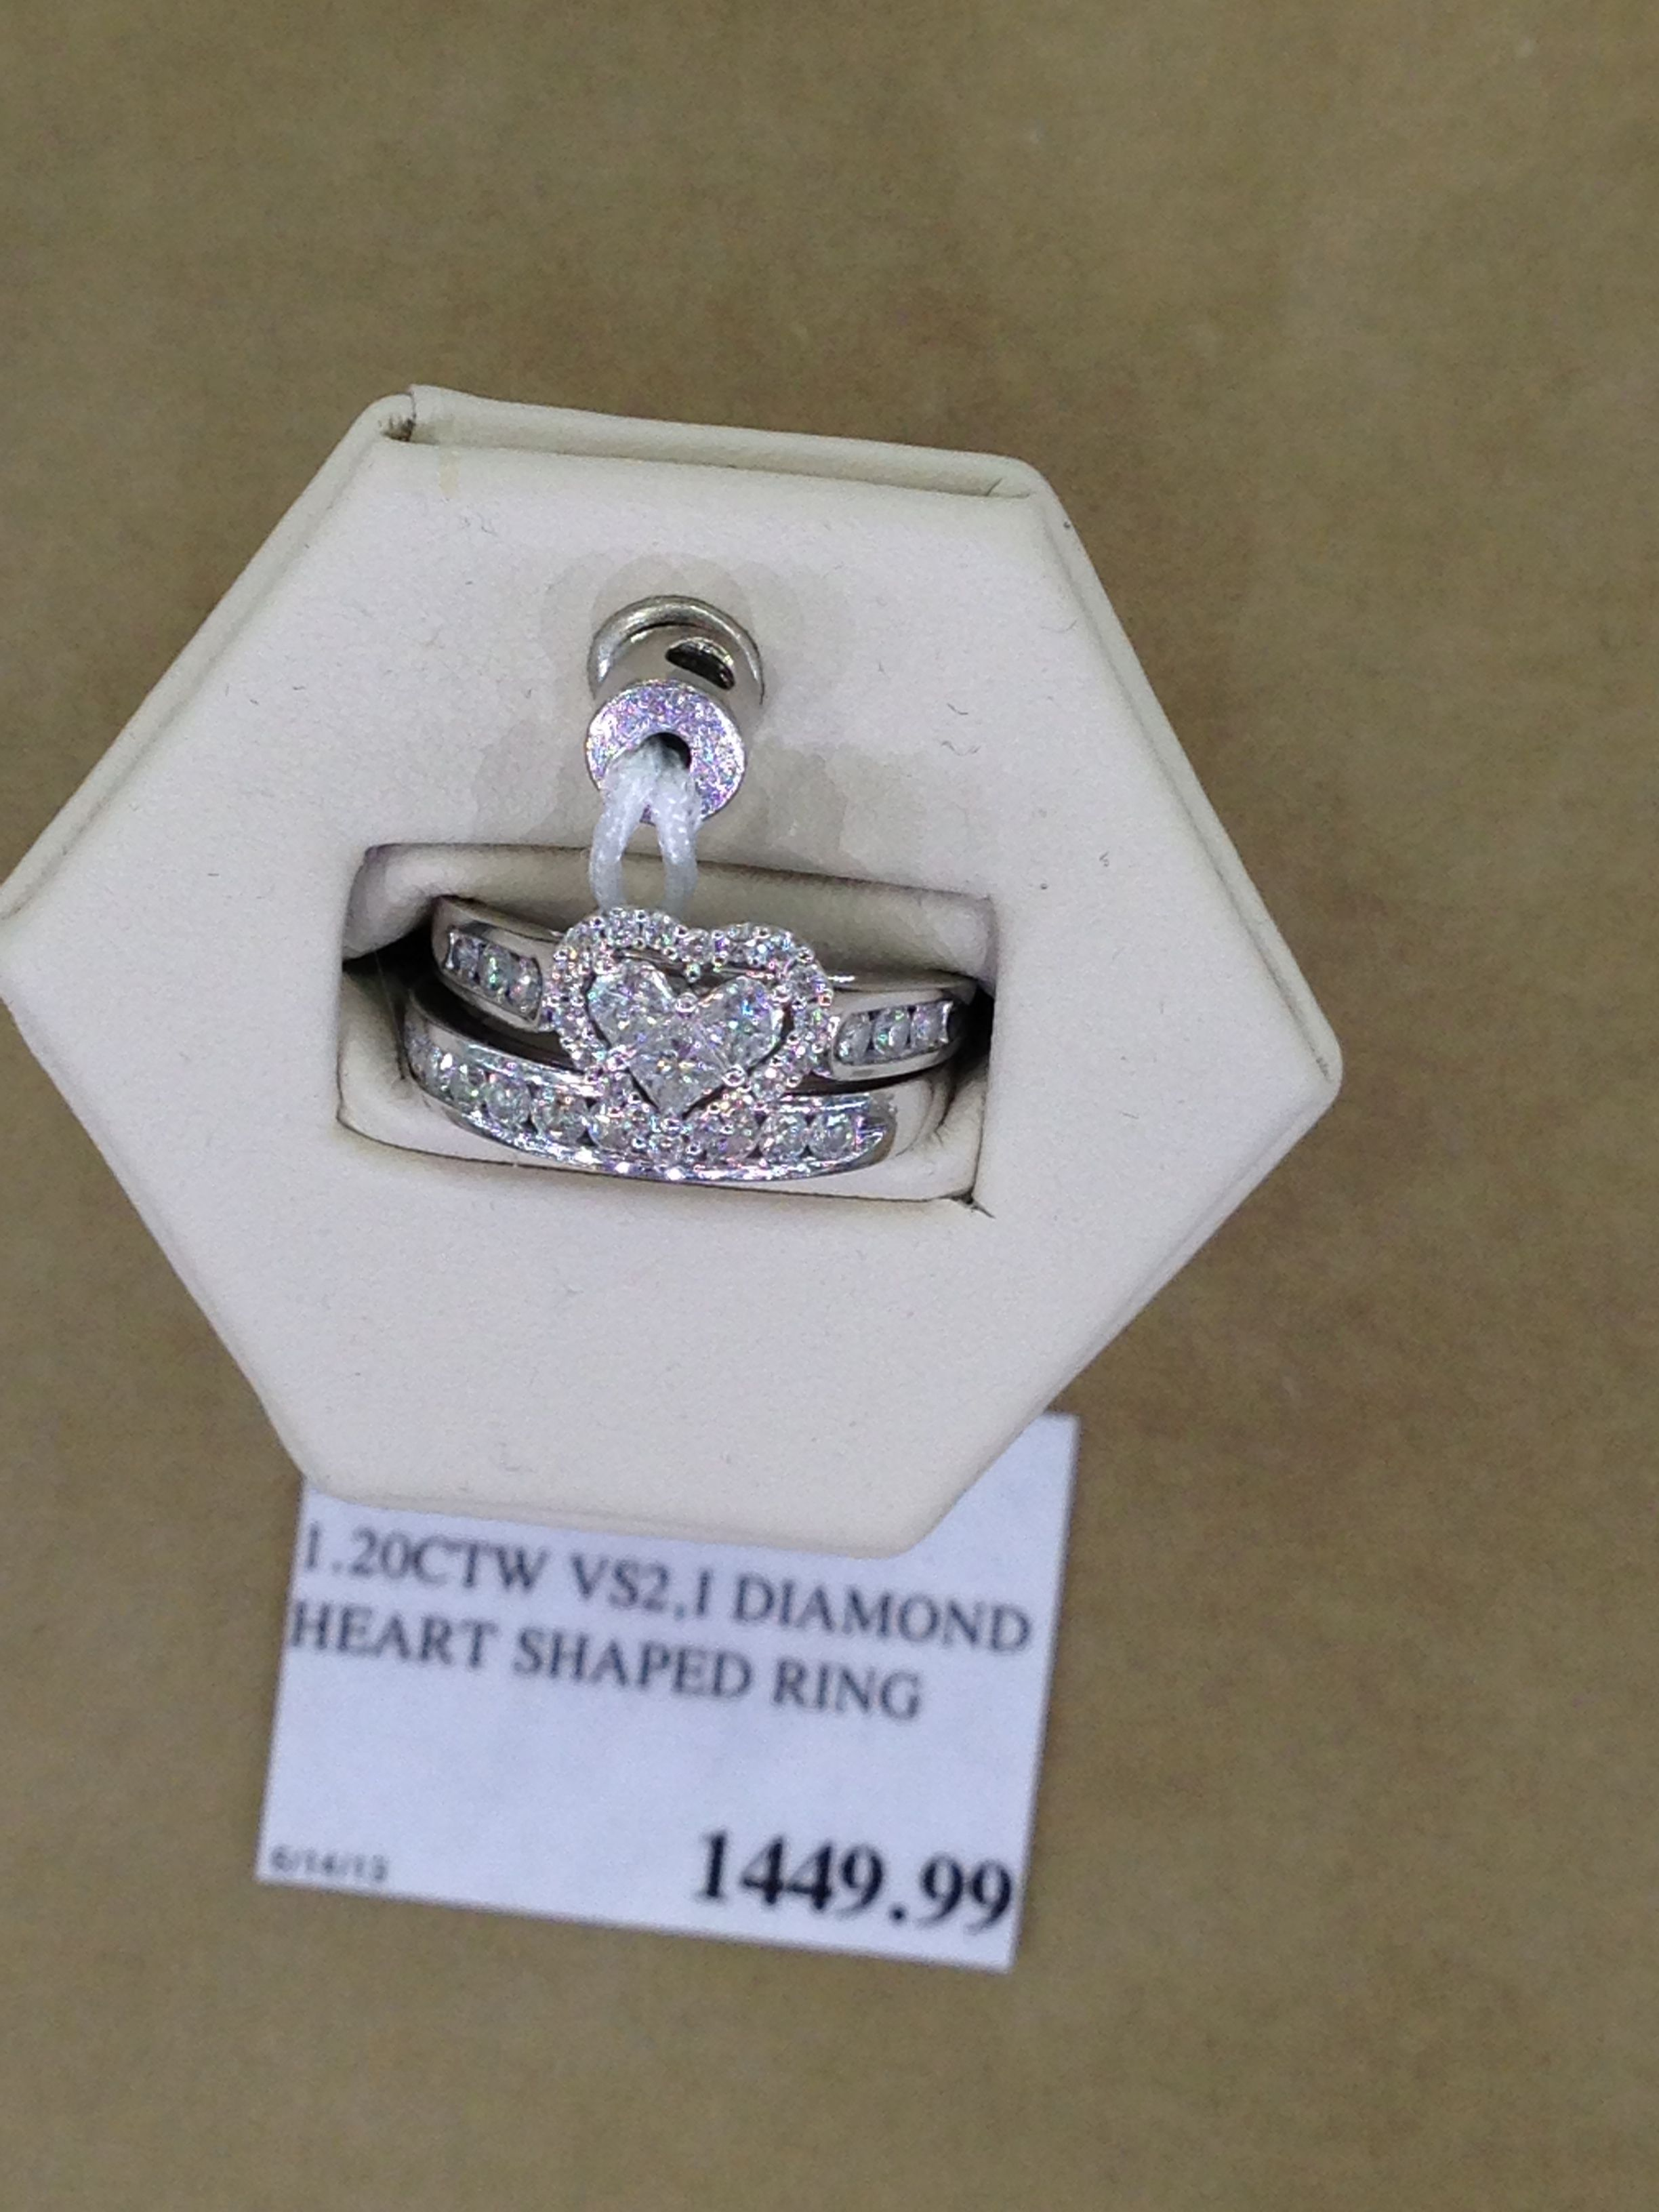 costco heart wedding ring i am in love its heart shaped and soooo beautiful - Costco Wedding Ring